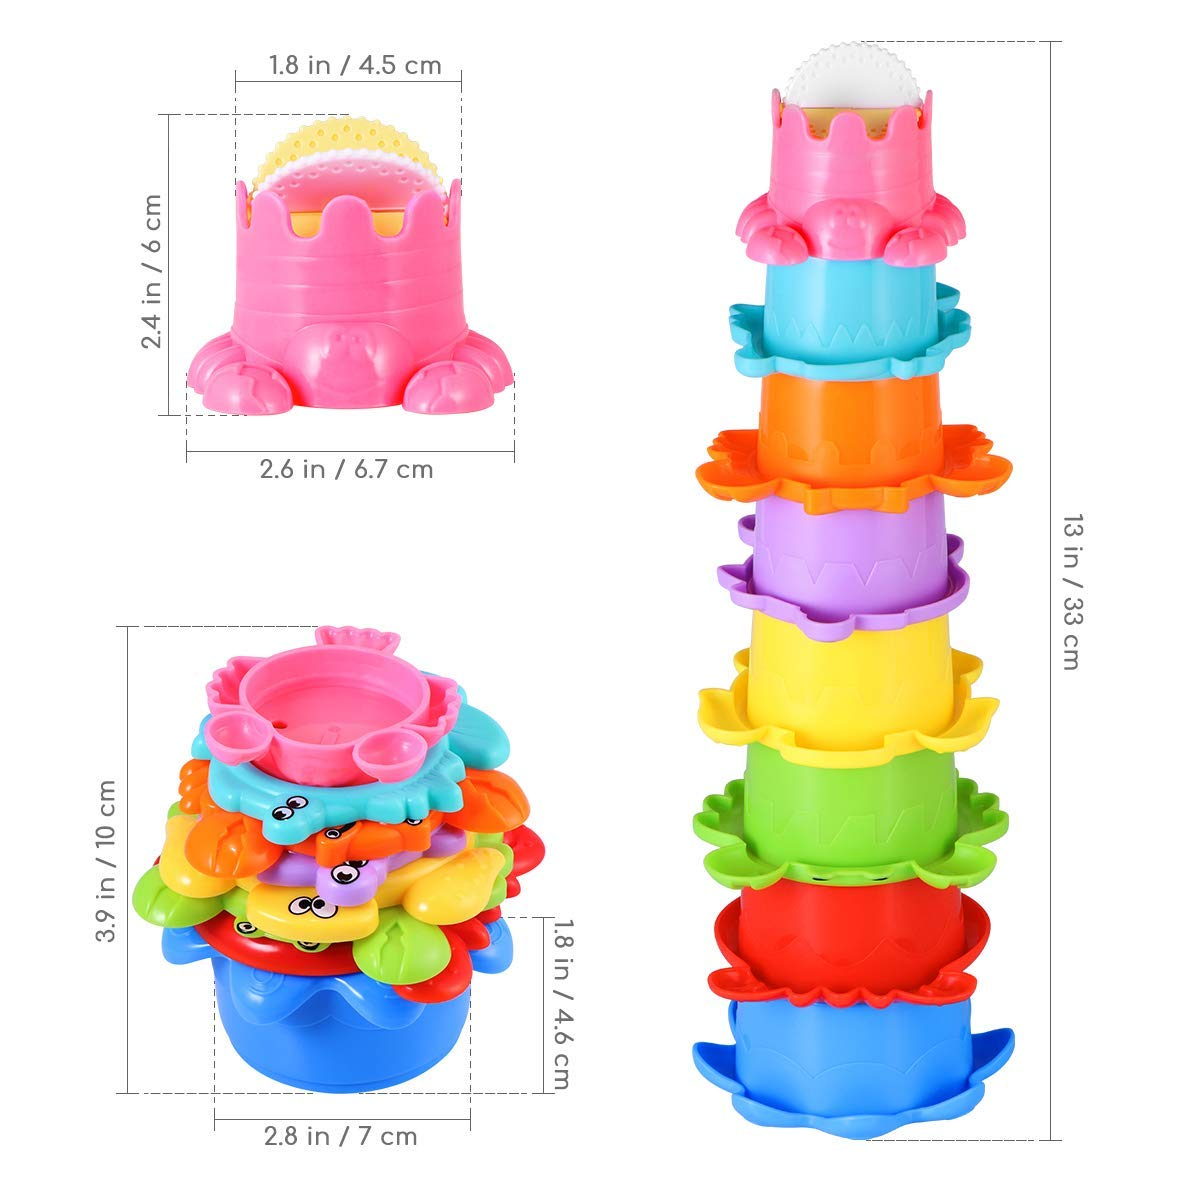 Goodluck001 Bath Toys for Toddlers 12PCS Bath Squirter ...